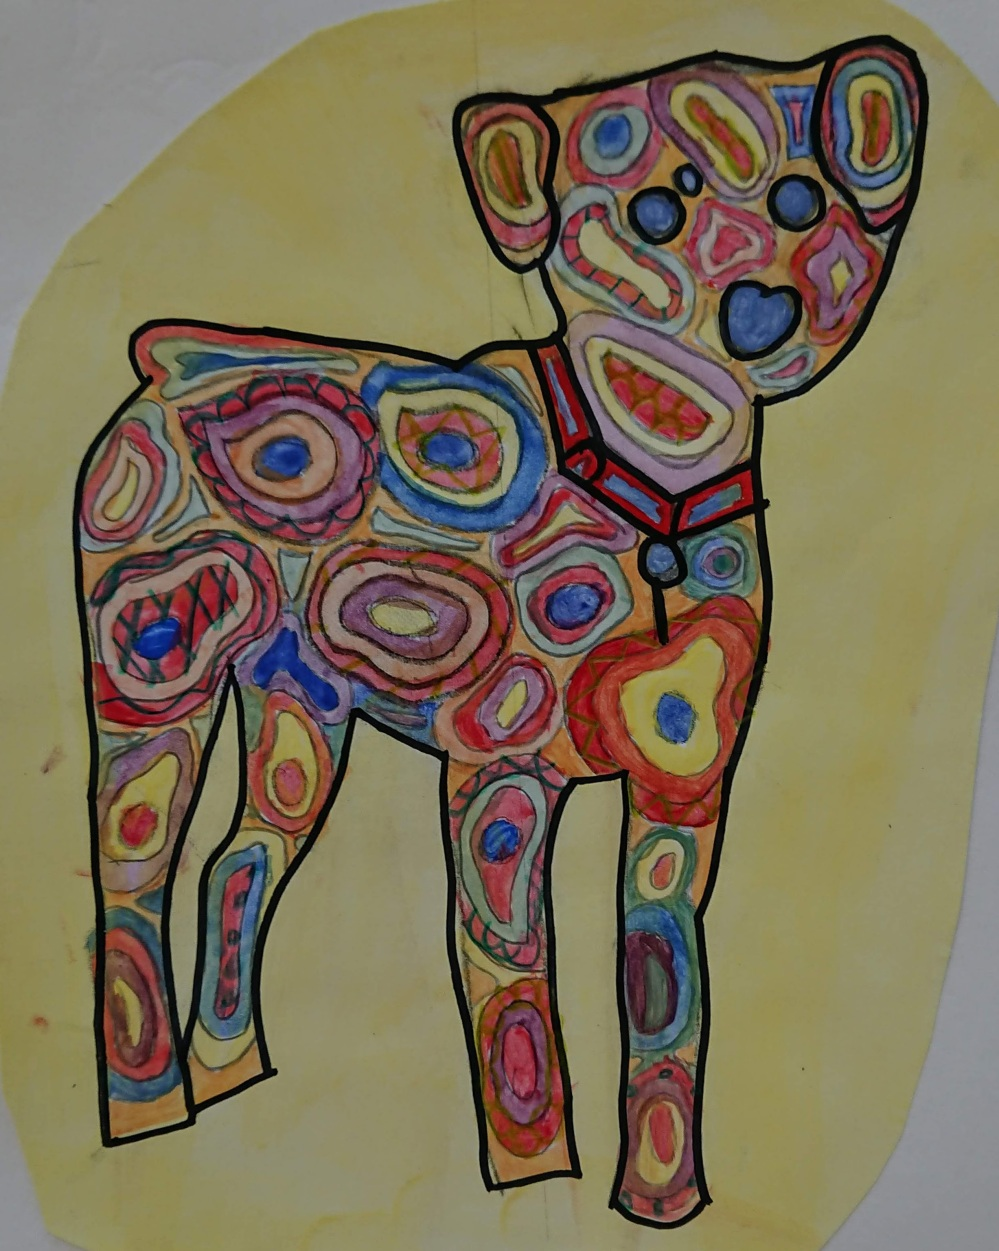 KS3 Colour theory painting project - puppy